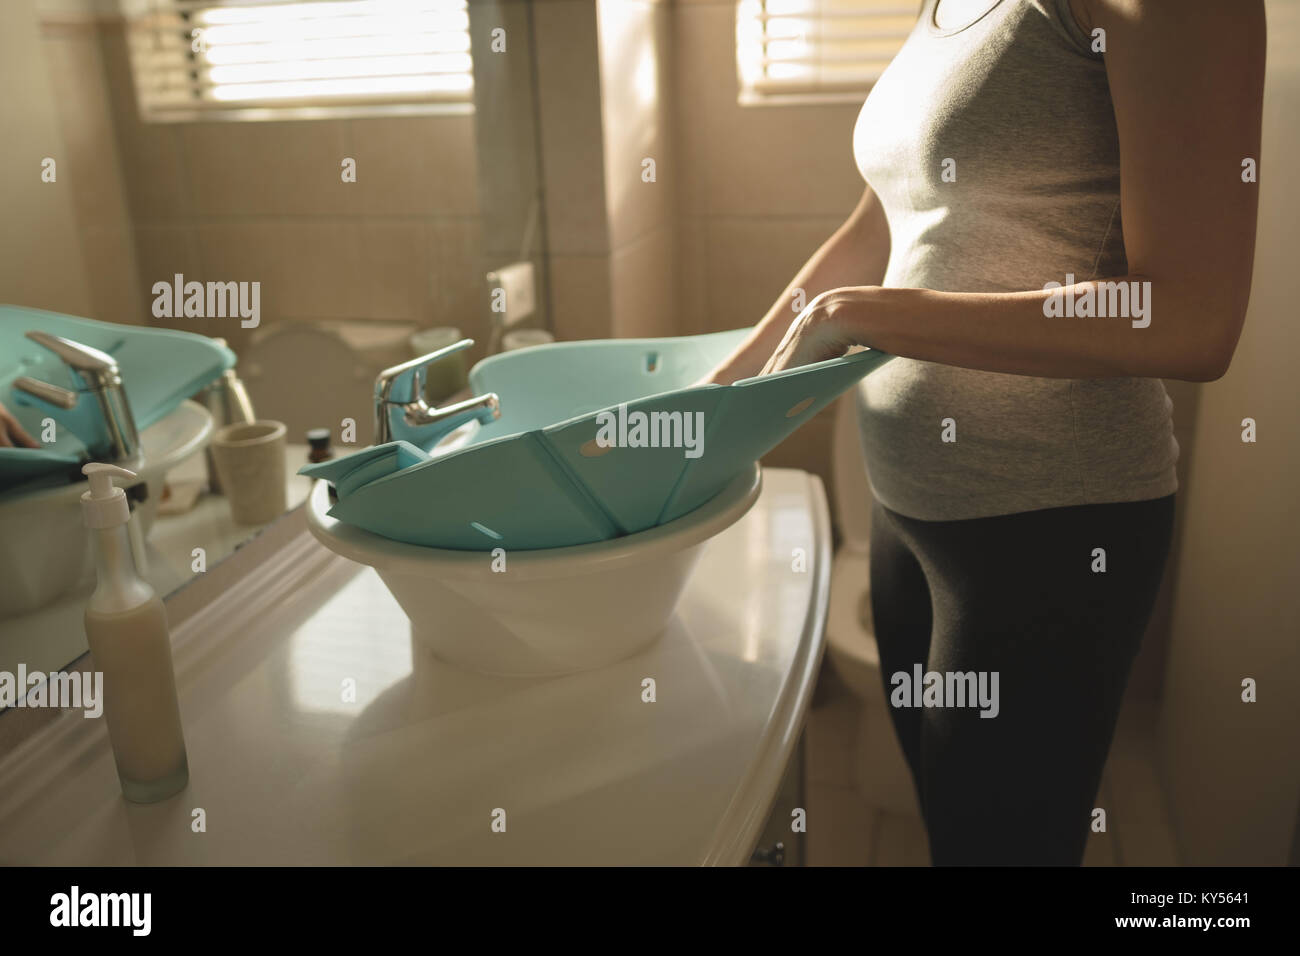 Young mom placing baby bath seat into bathroom sink - Stock Image